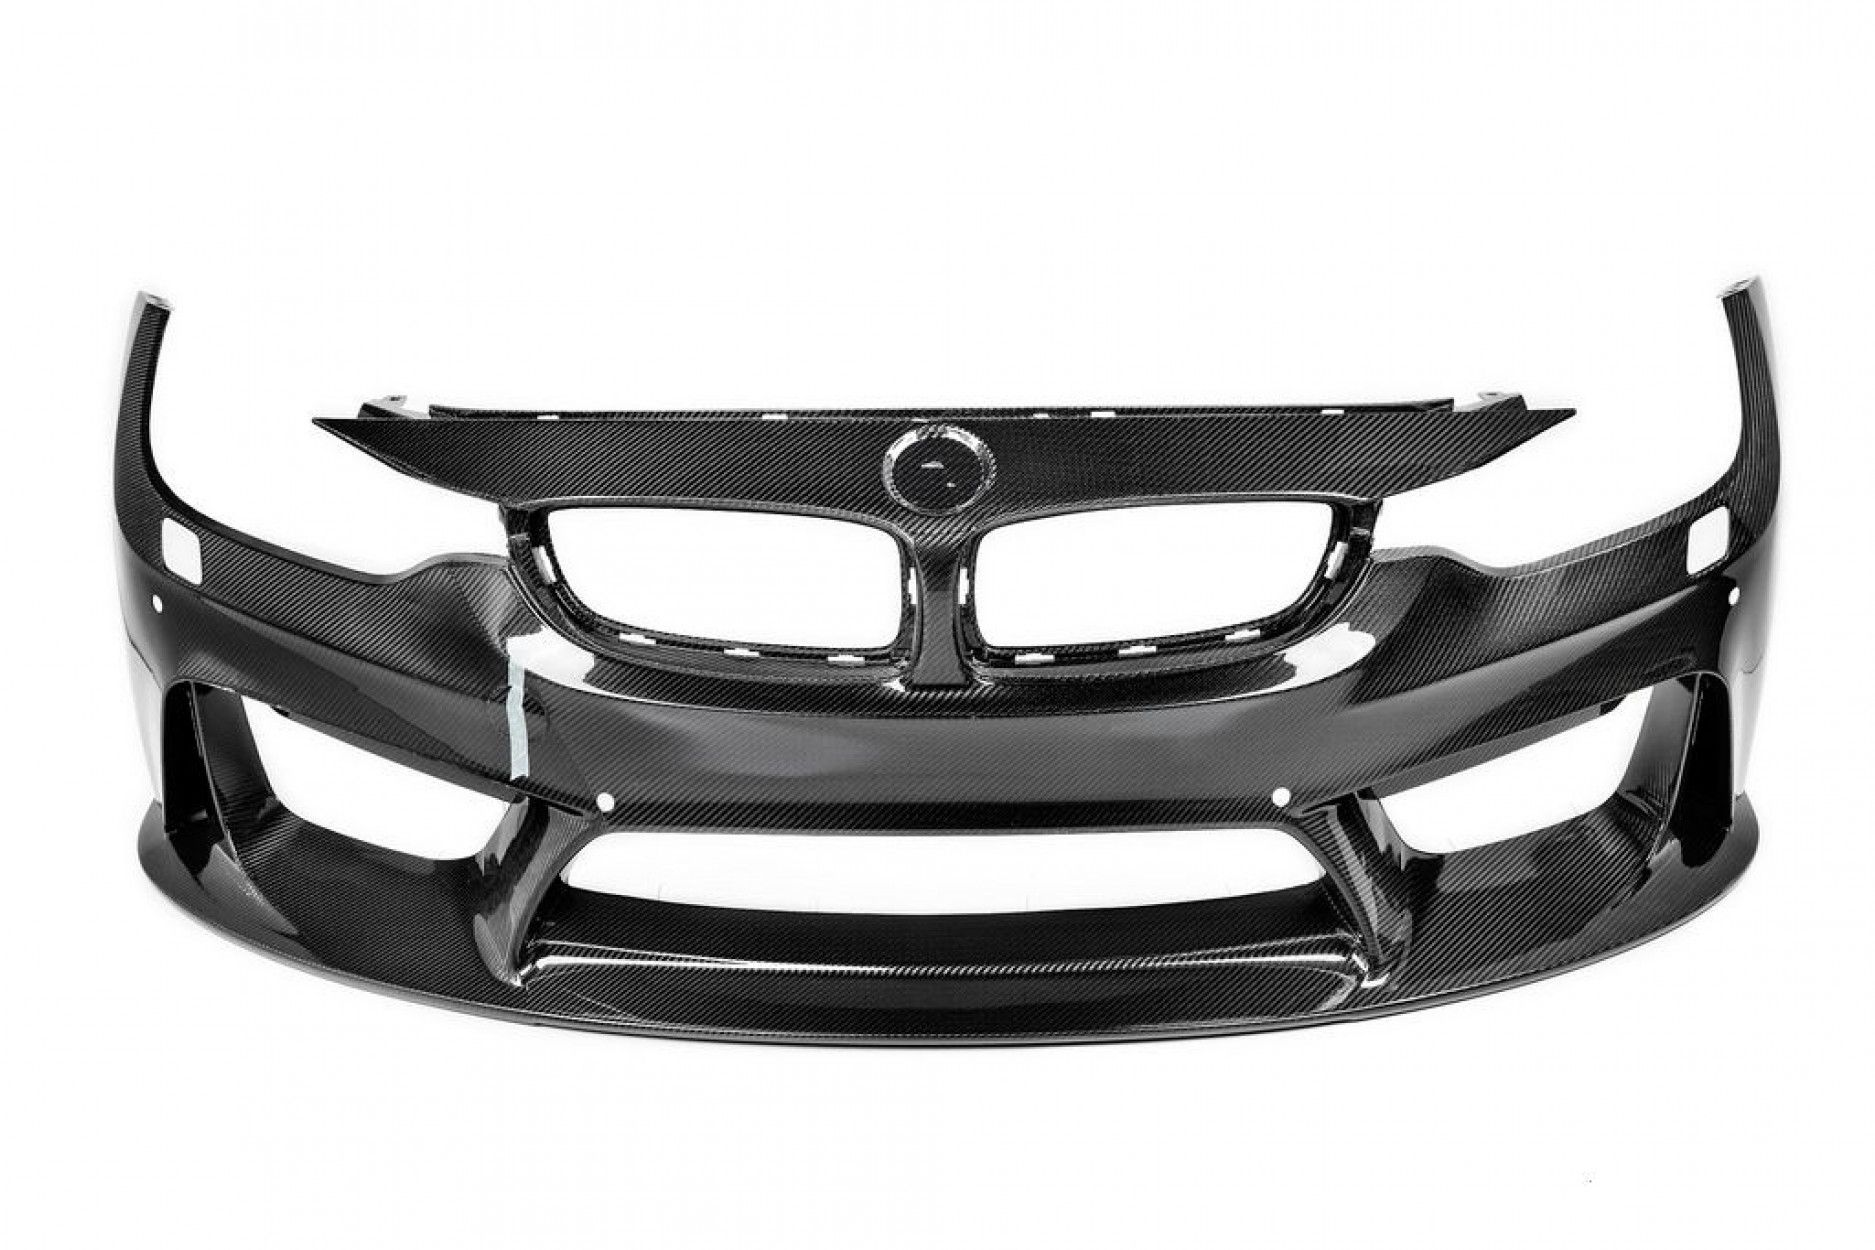 3DDesign carbon front bumper for BMW F82 M4